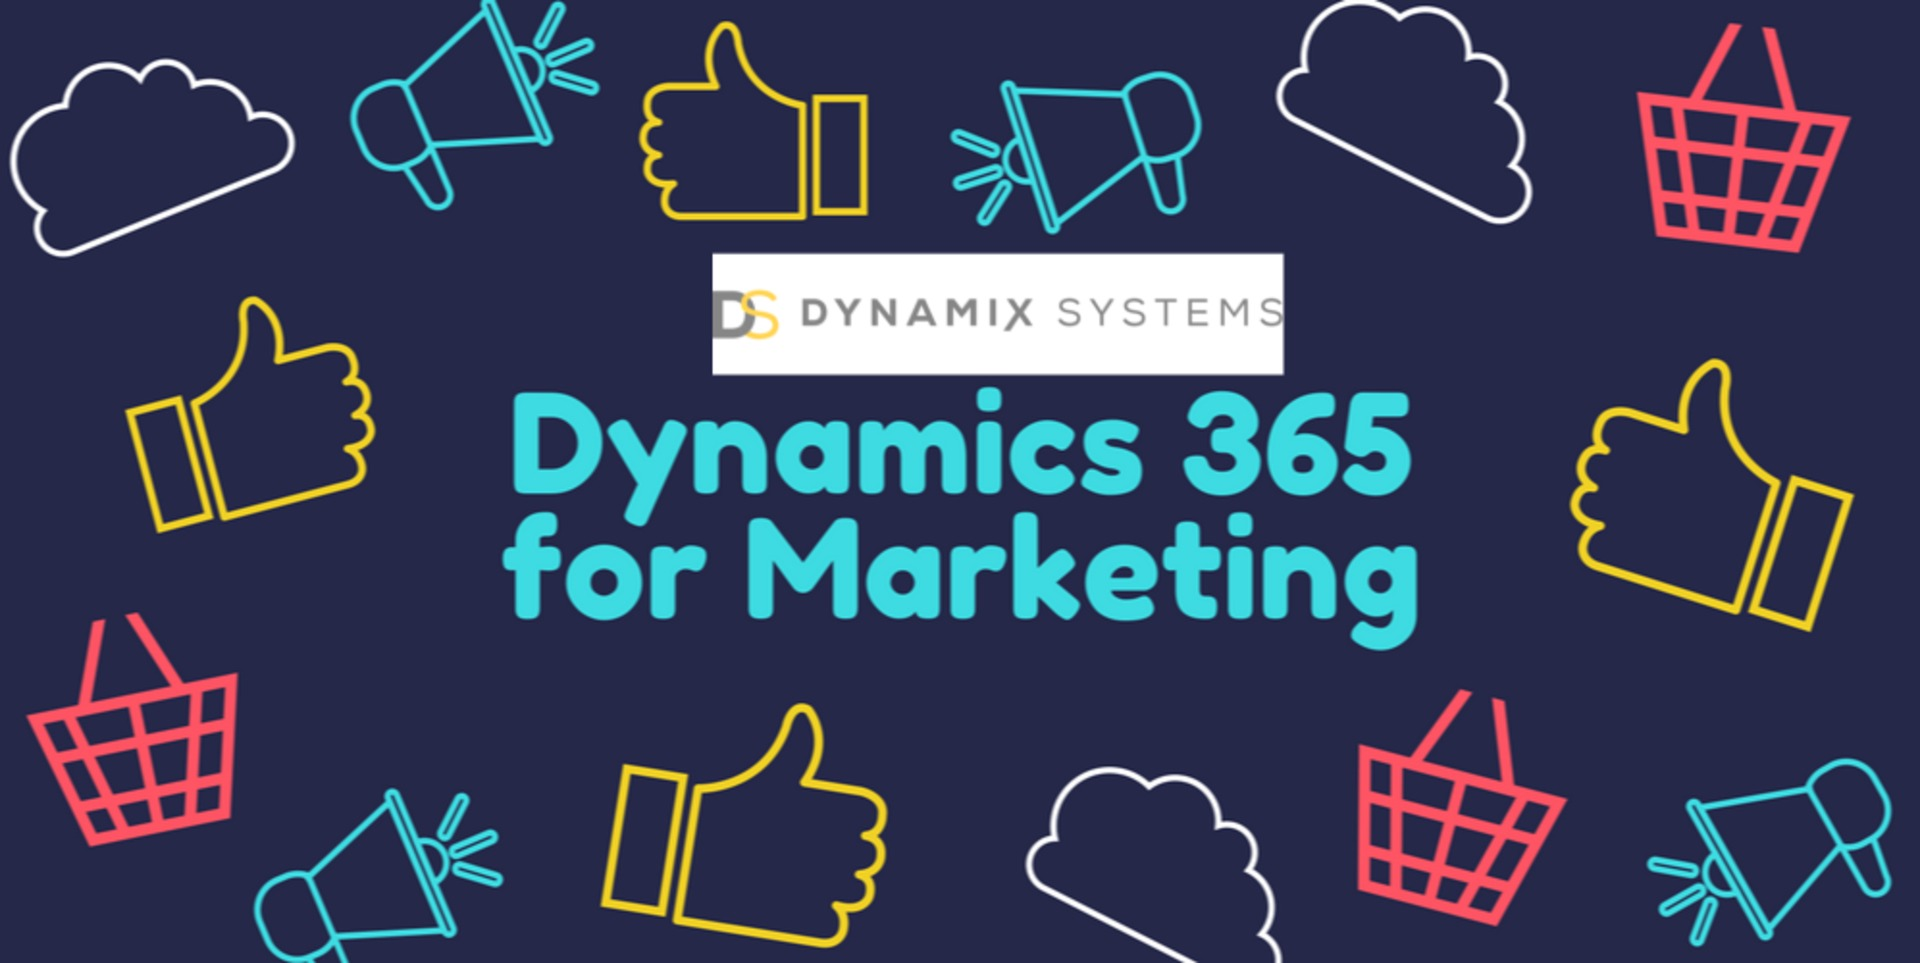 Zoom The World - Dynamics-365-for-Marketing-1